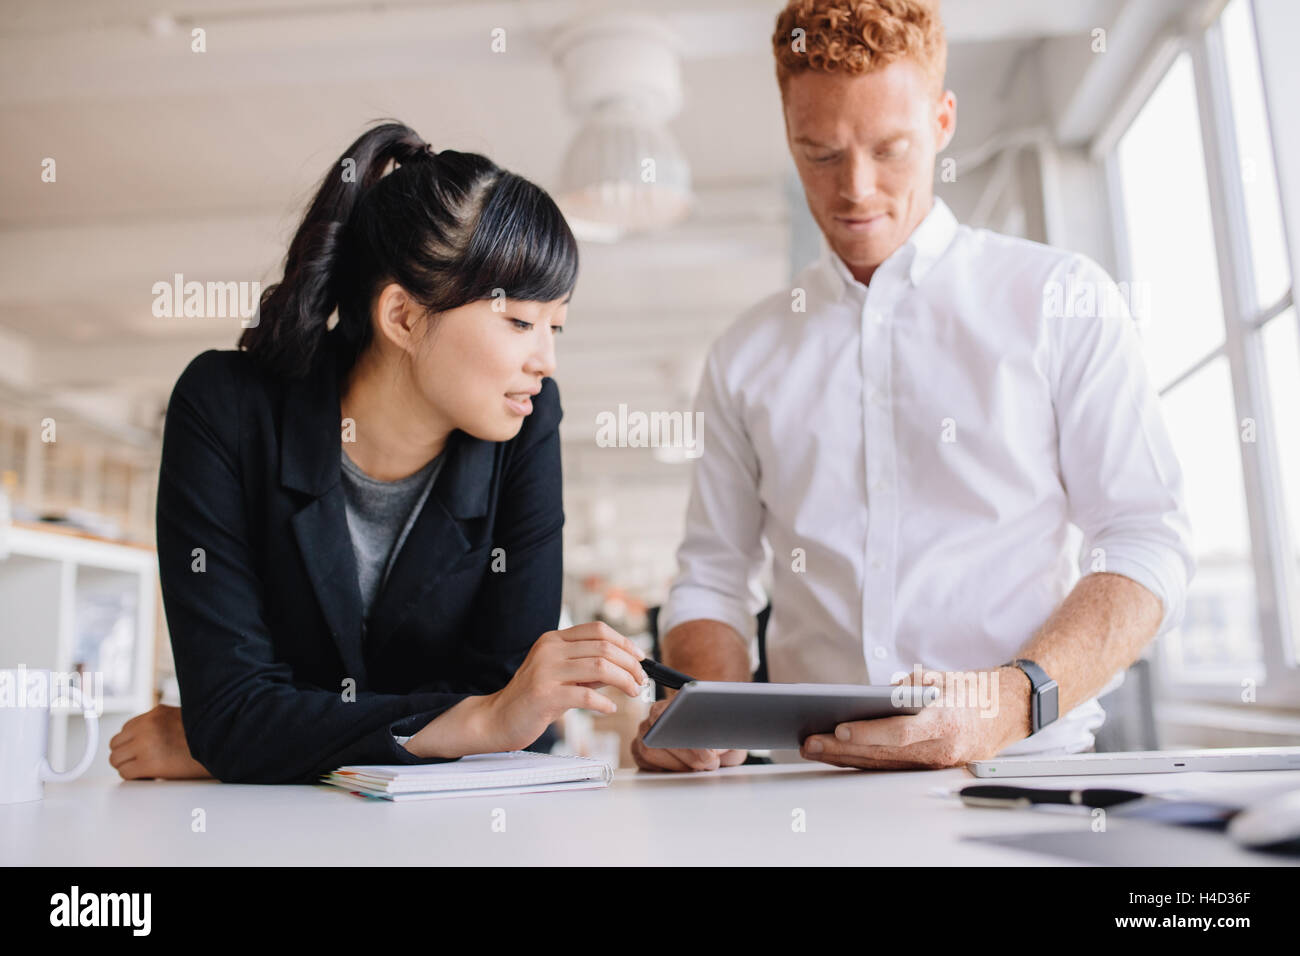 Business people working together on digital tablet in modern office. Business man and woman standing at work desk - Stock Image